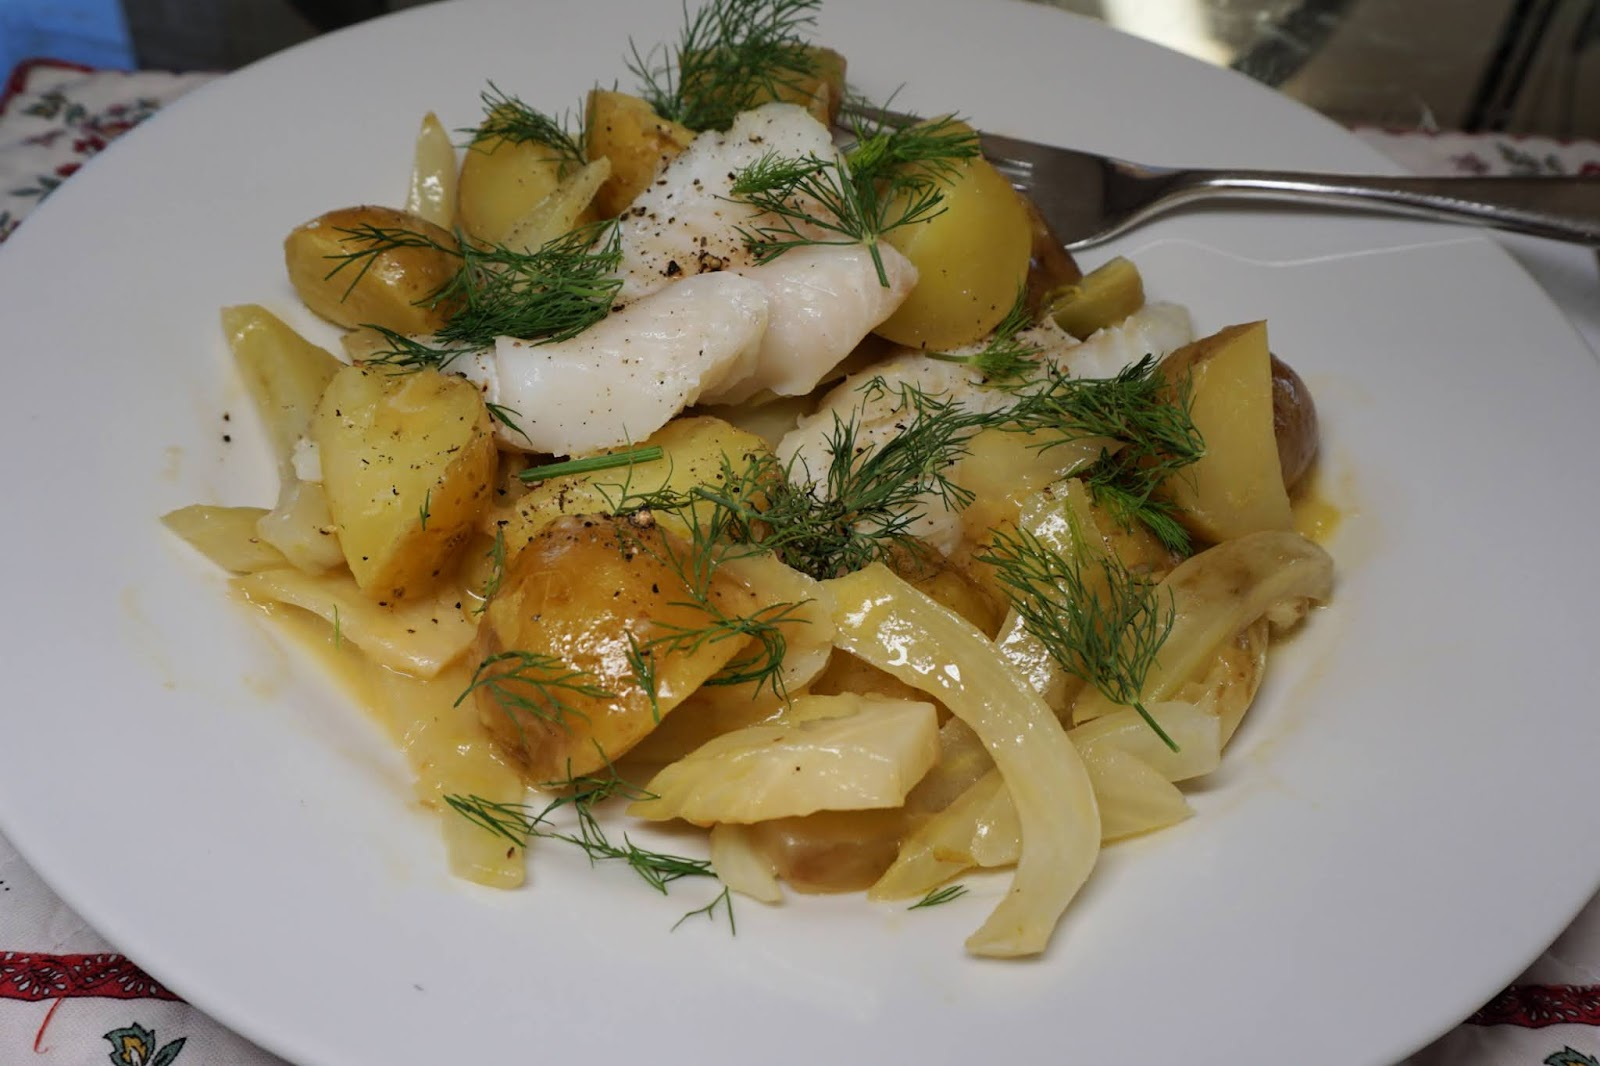 Pollock on new potatoes and fennel